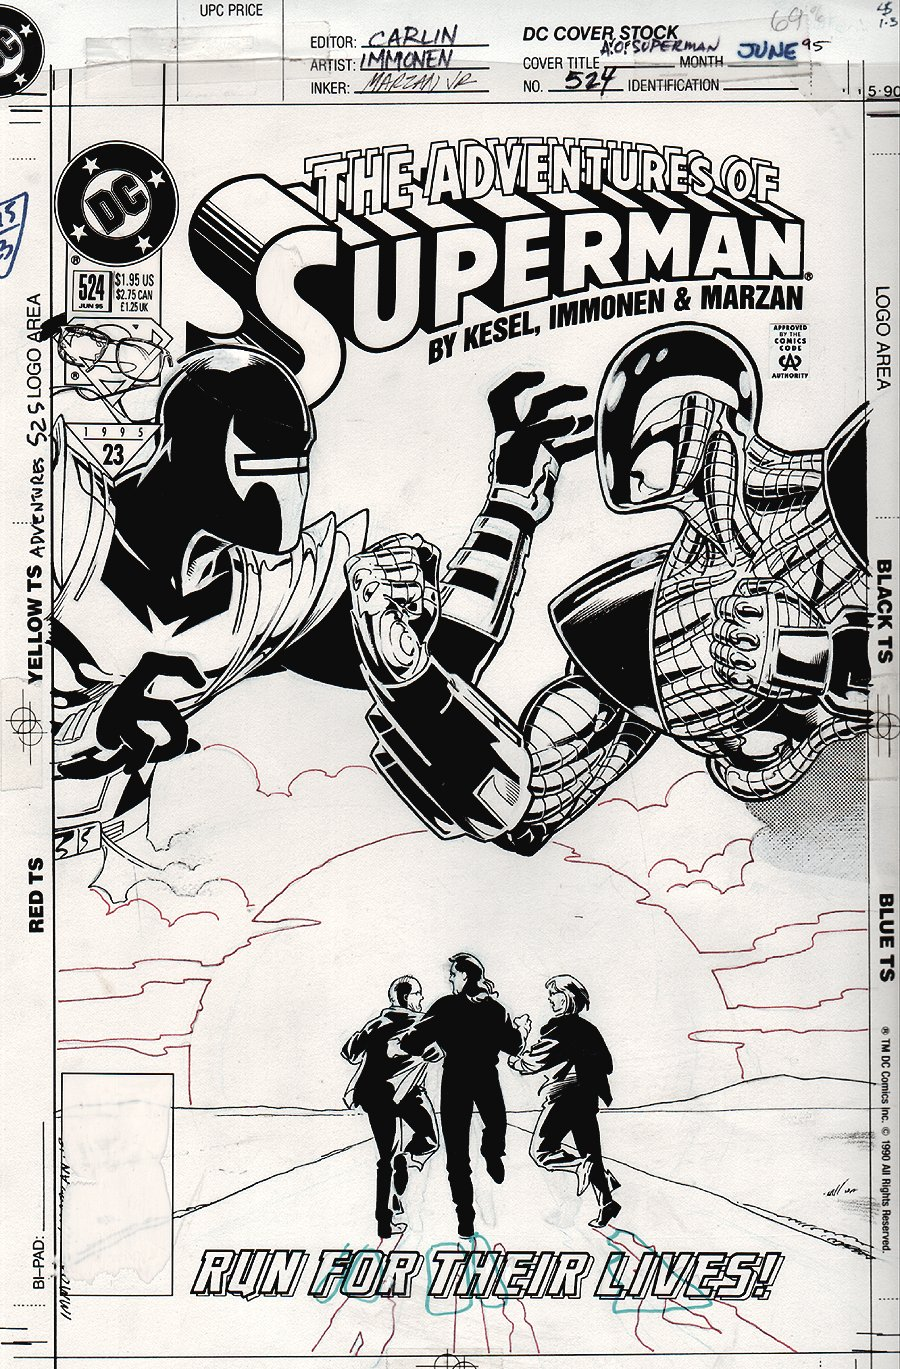 Adventures of Superman #524 Cover (1995)